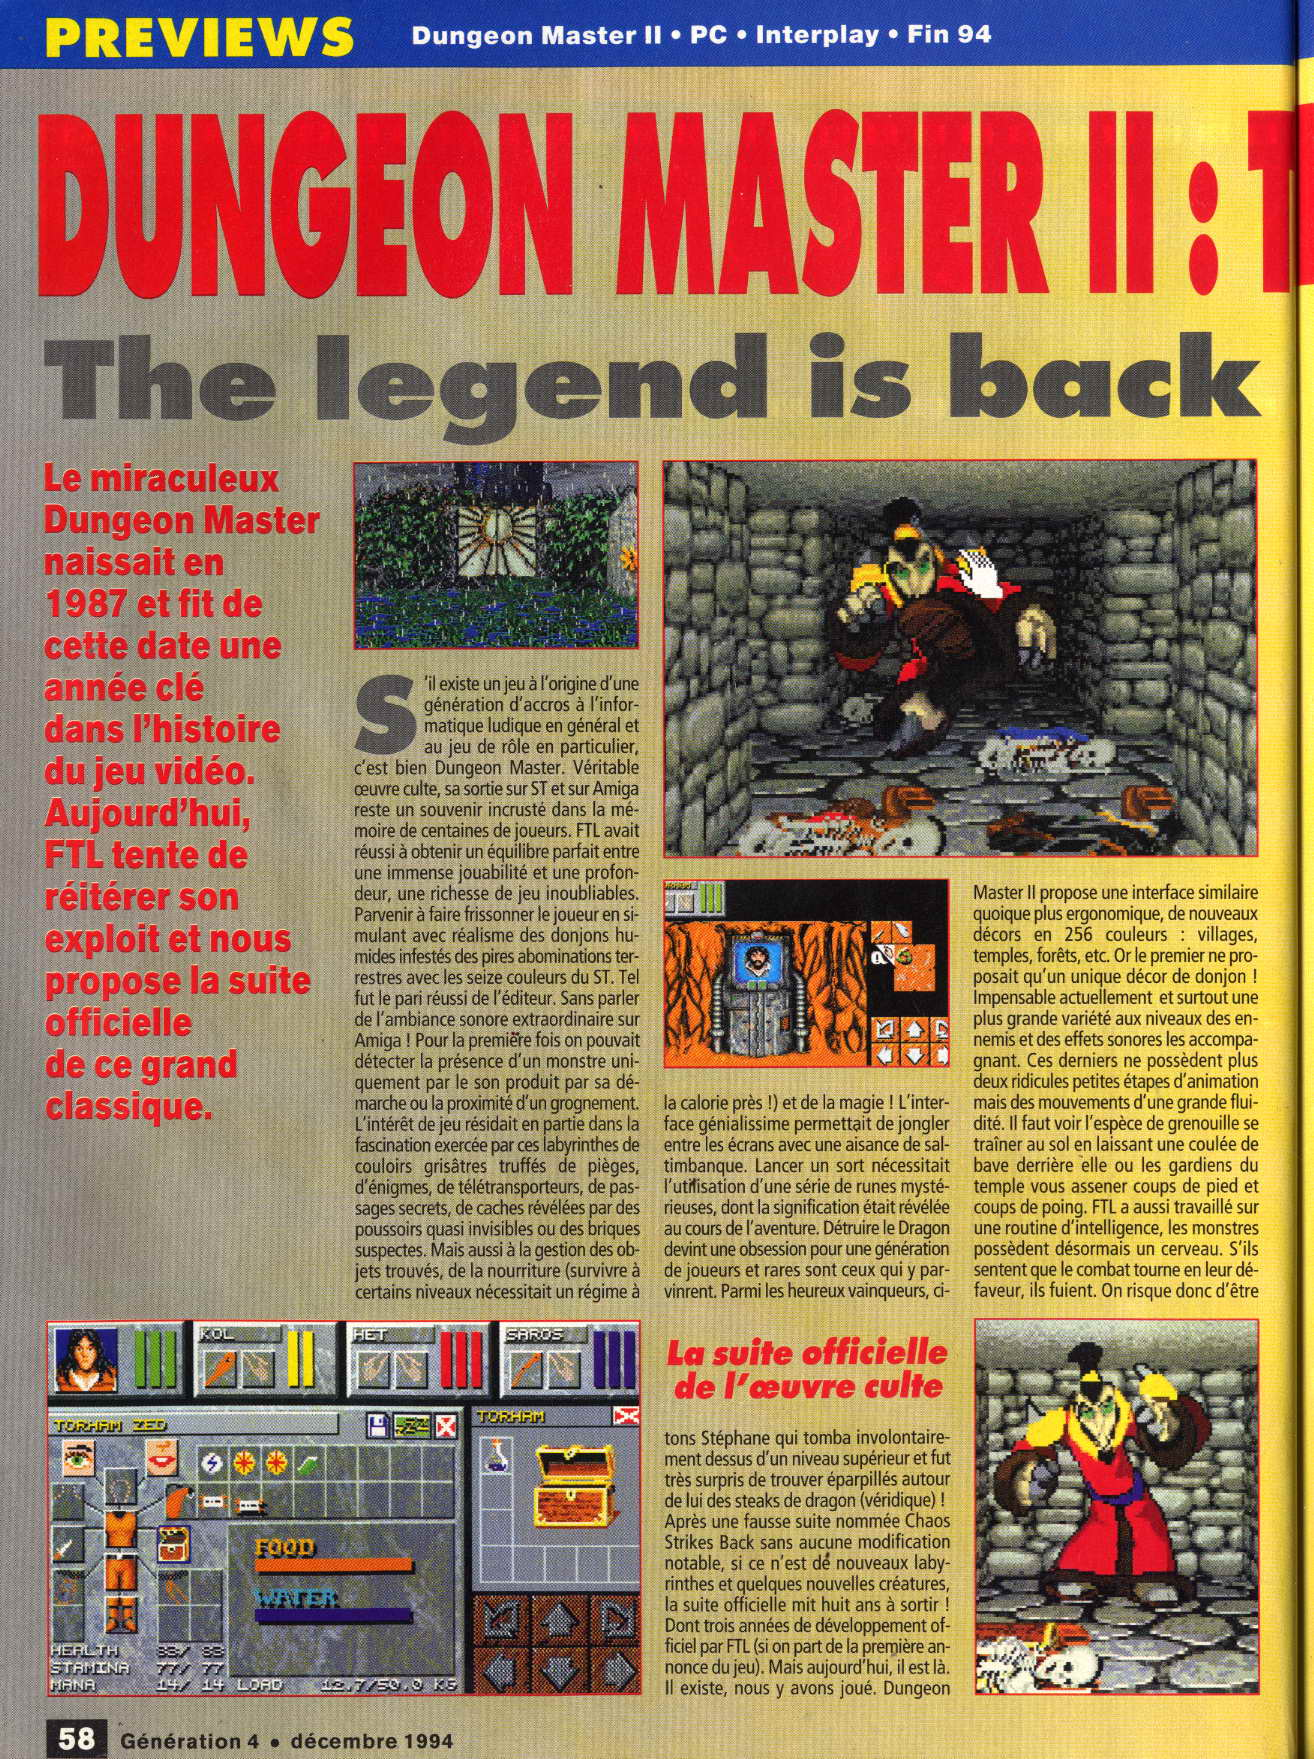 Dungeon Master II for PC Preview published in French magazine 'Generation 4', Issue #72 December 1994, Page 58